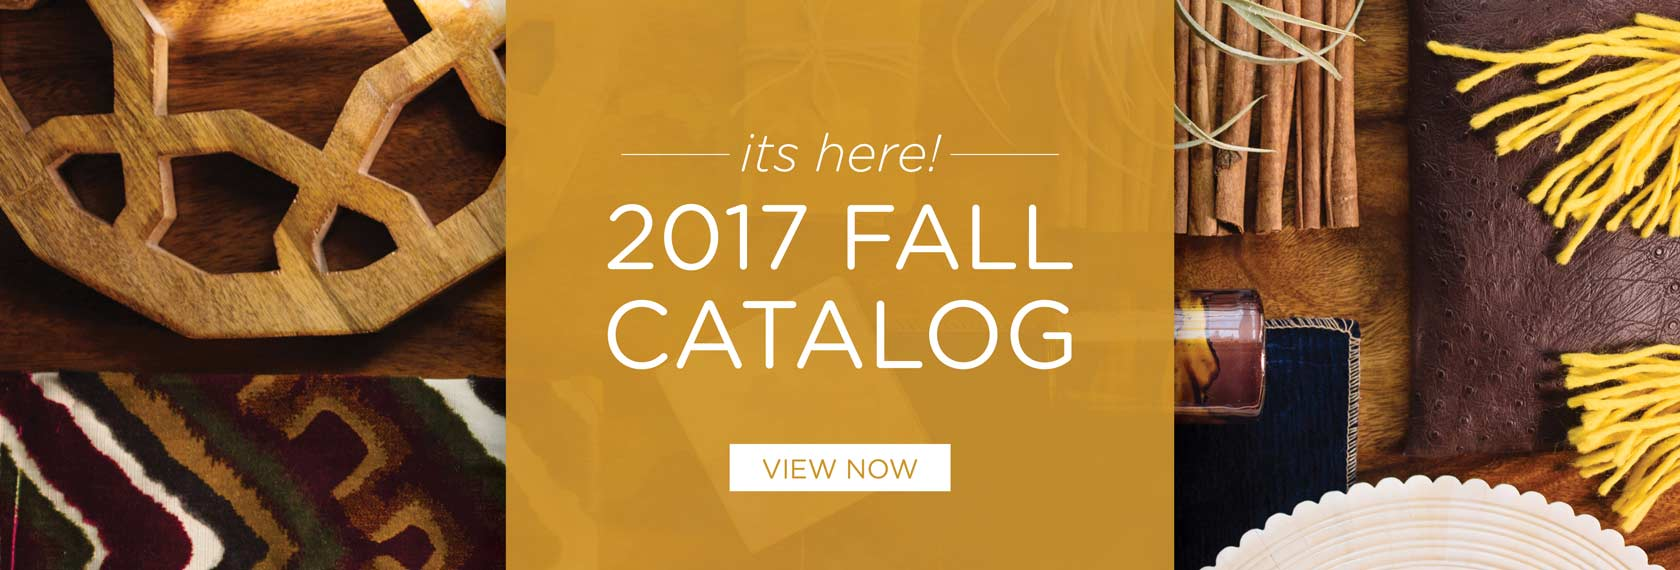 2017 Mathis Brothers Furniture Fall Catalog